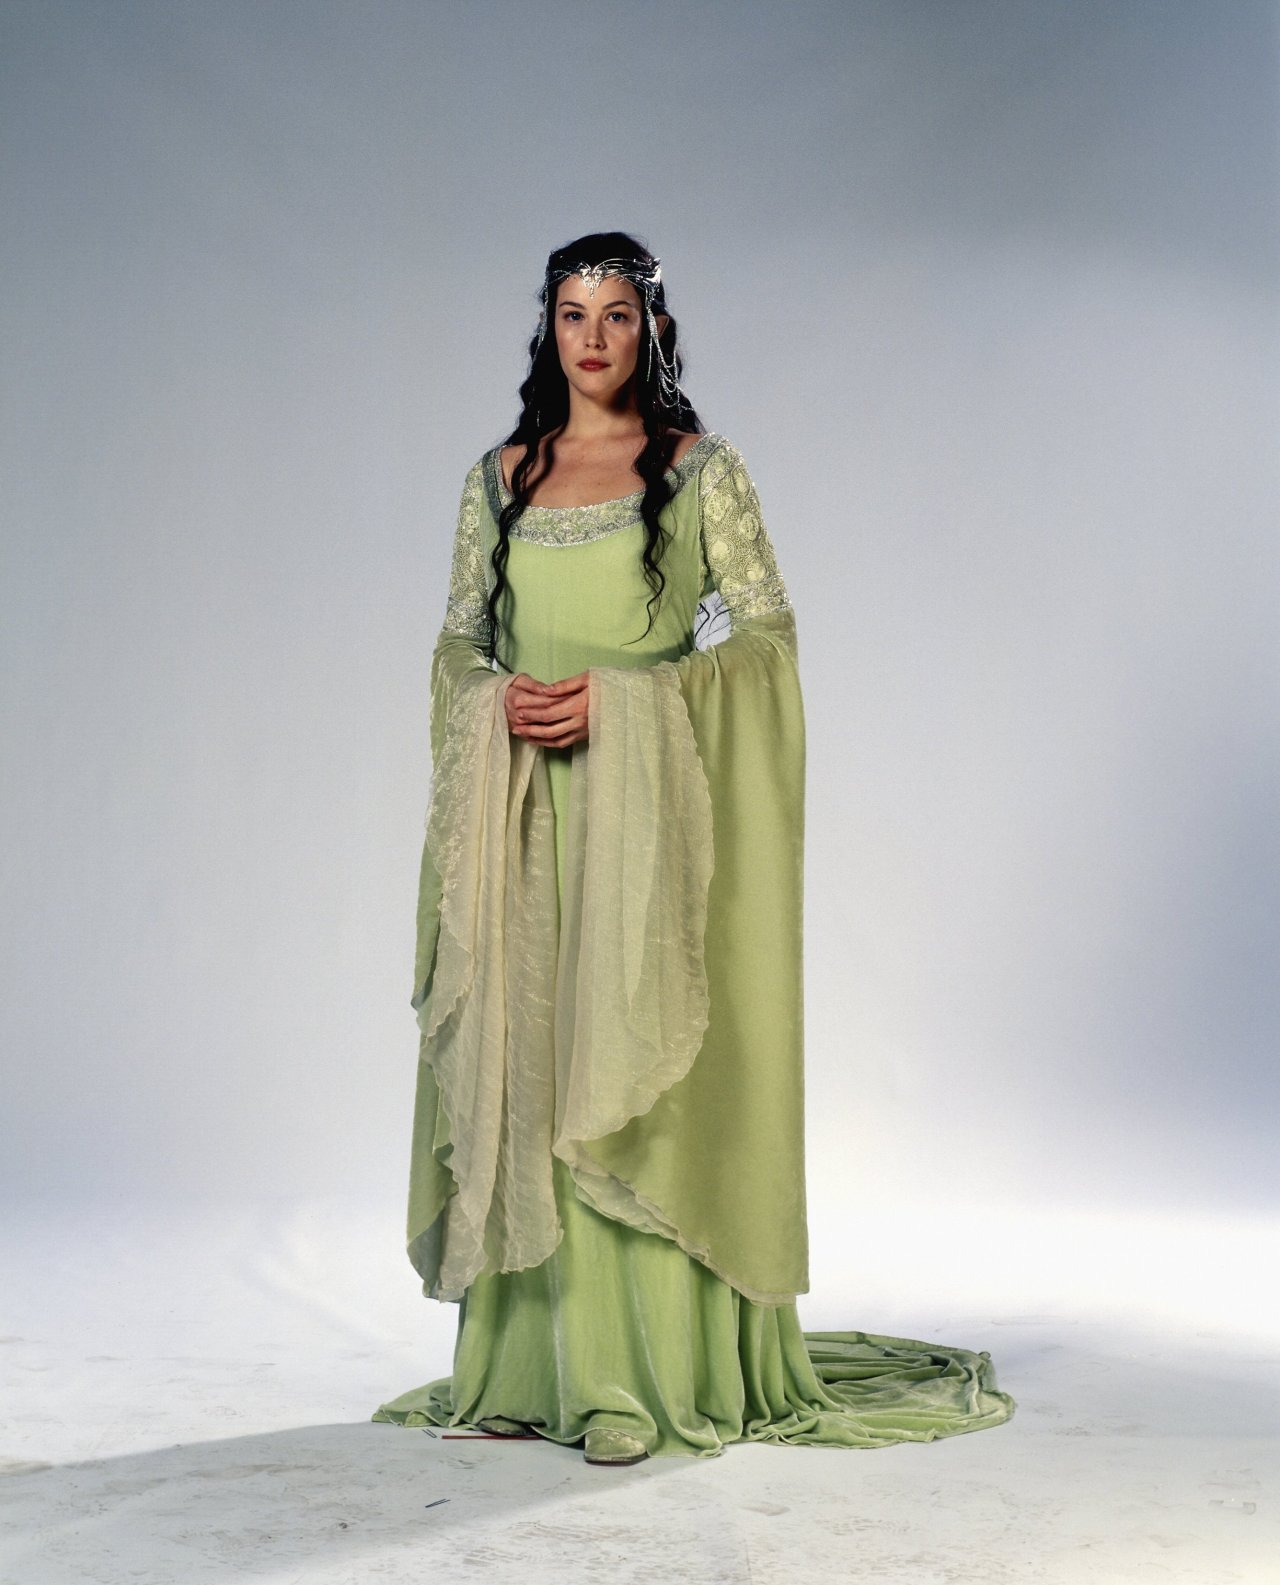 suicideblonde:  Liv Tyler as Arwen